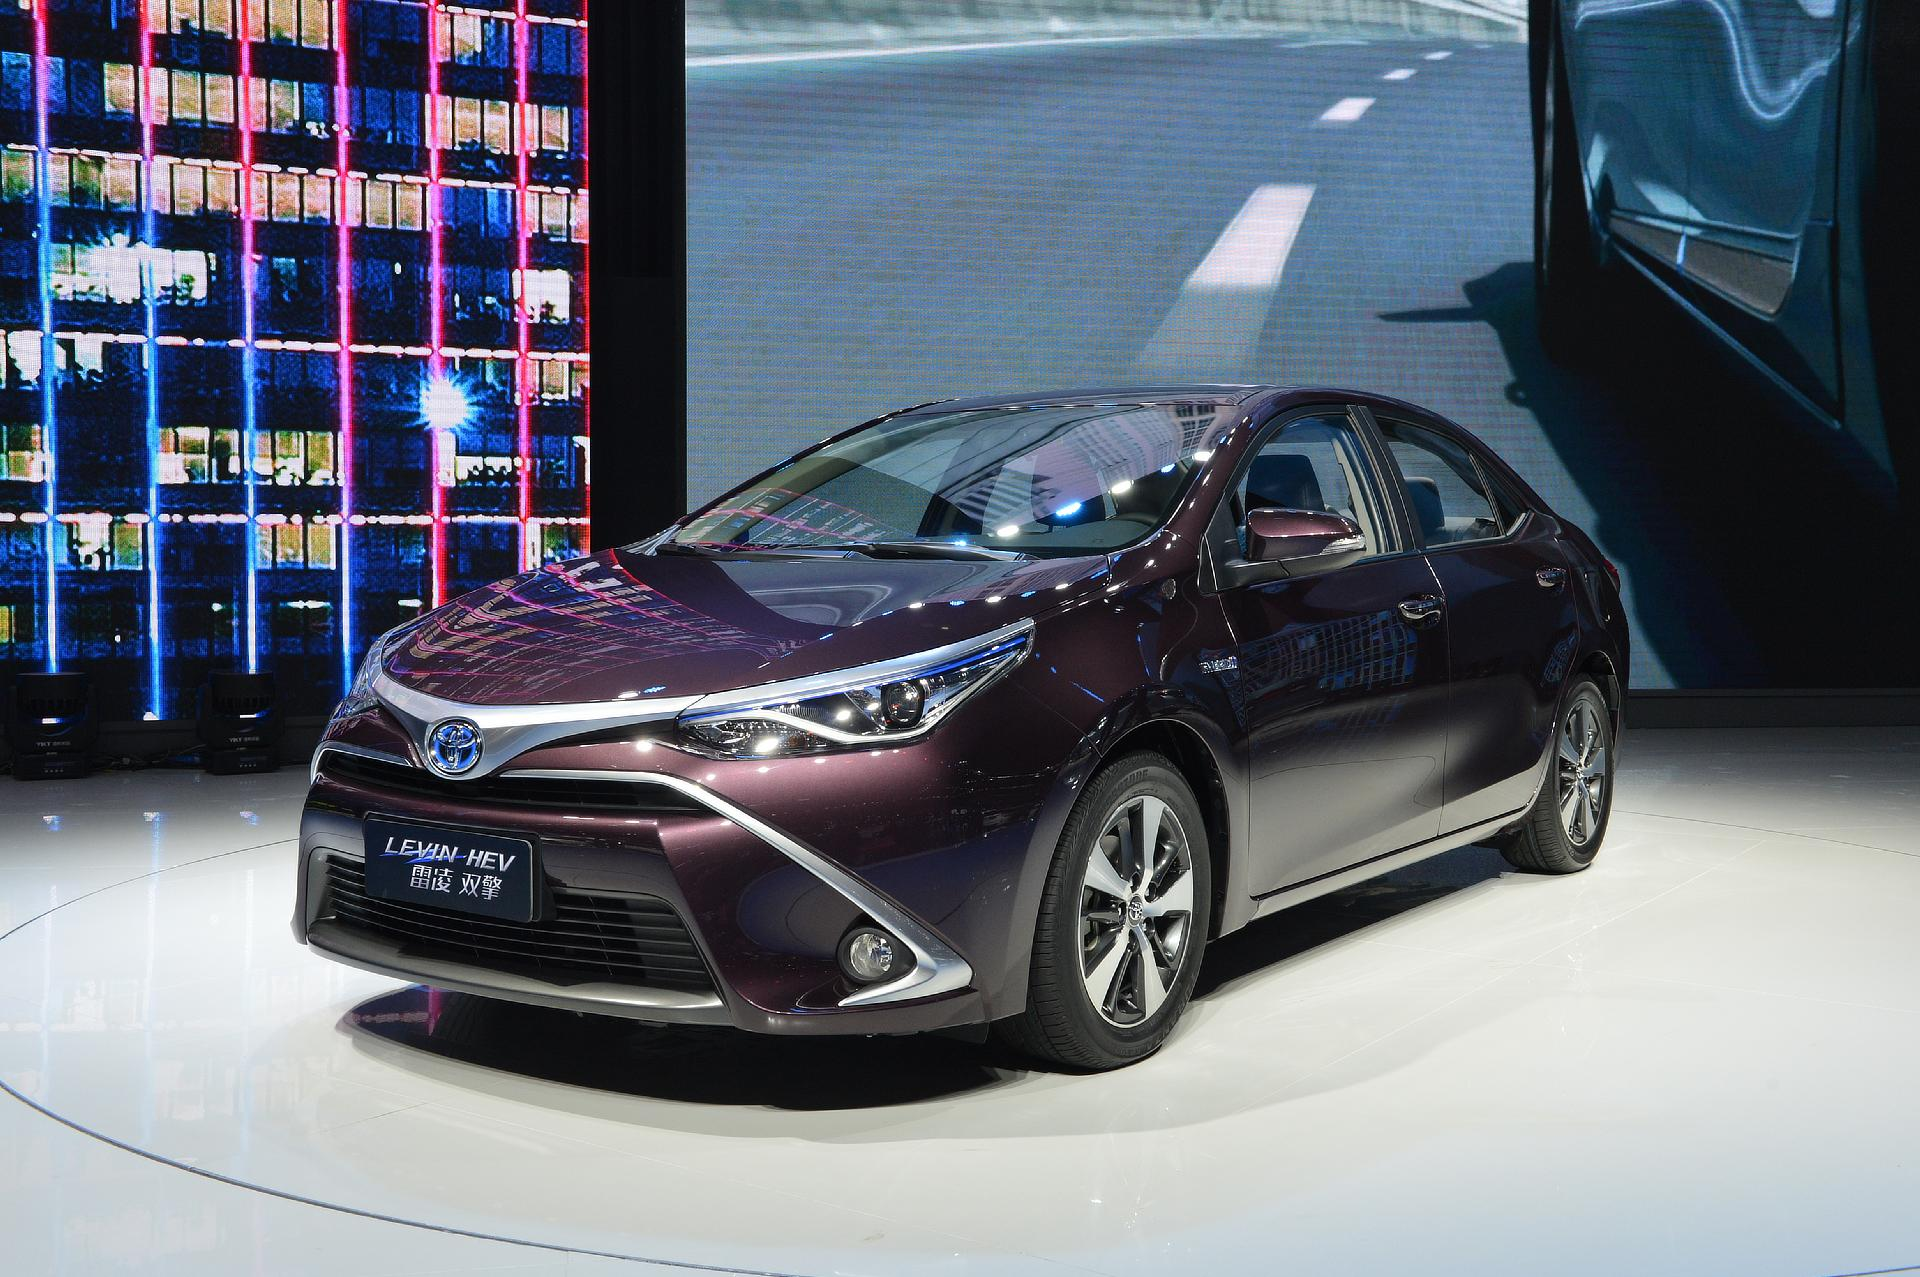 2017 Rav4 Hybrid Review further How Long Will Hybrid Car Batteries Last moreover 2018 Toyota Prius Two Eco Review moreover Capacitors further 7698425. on prius hybrid battery